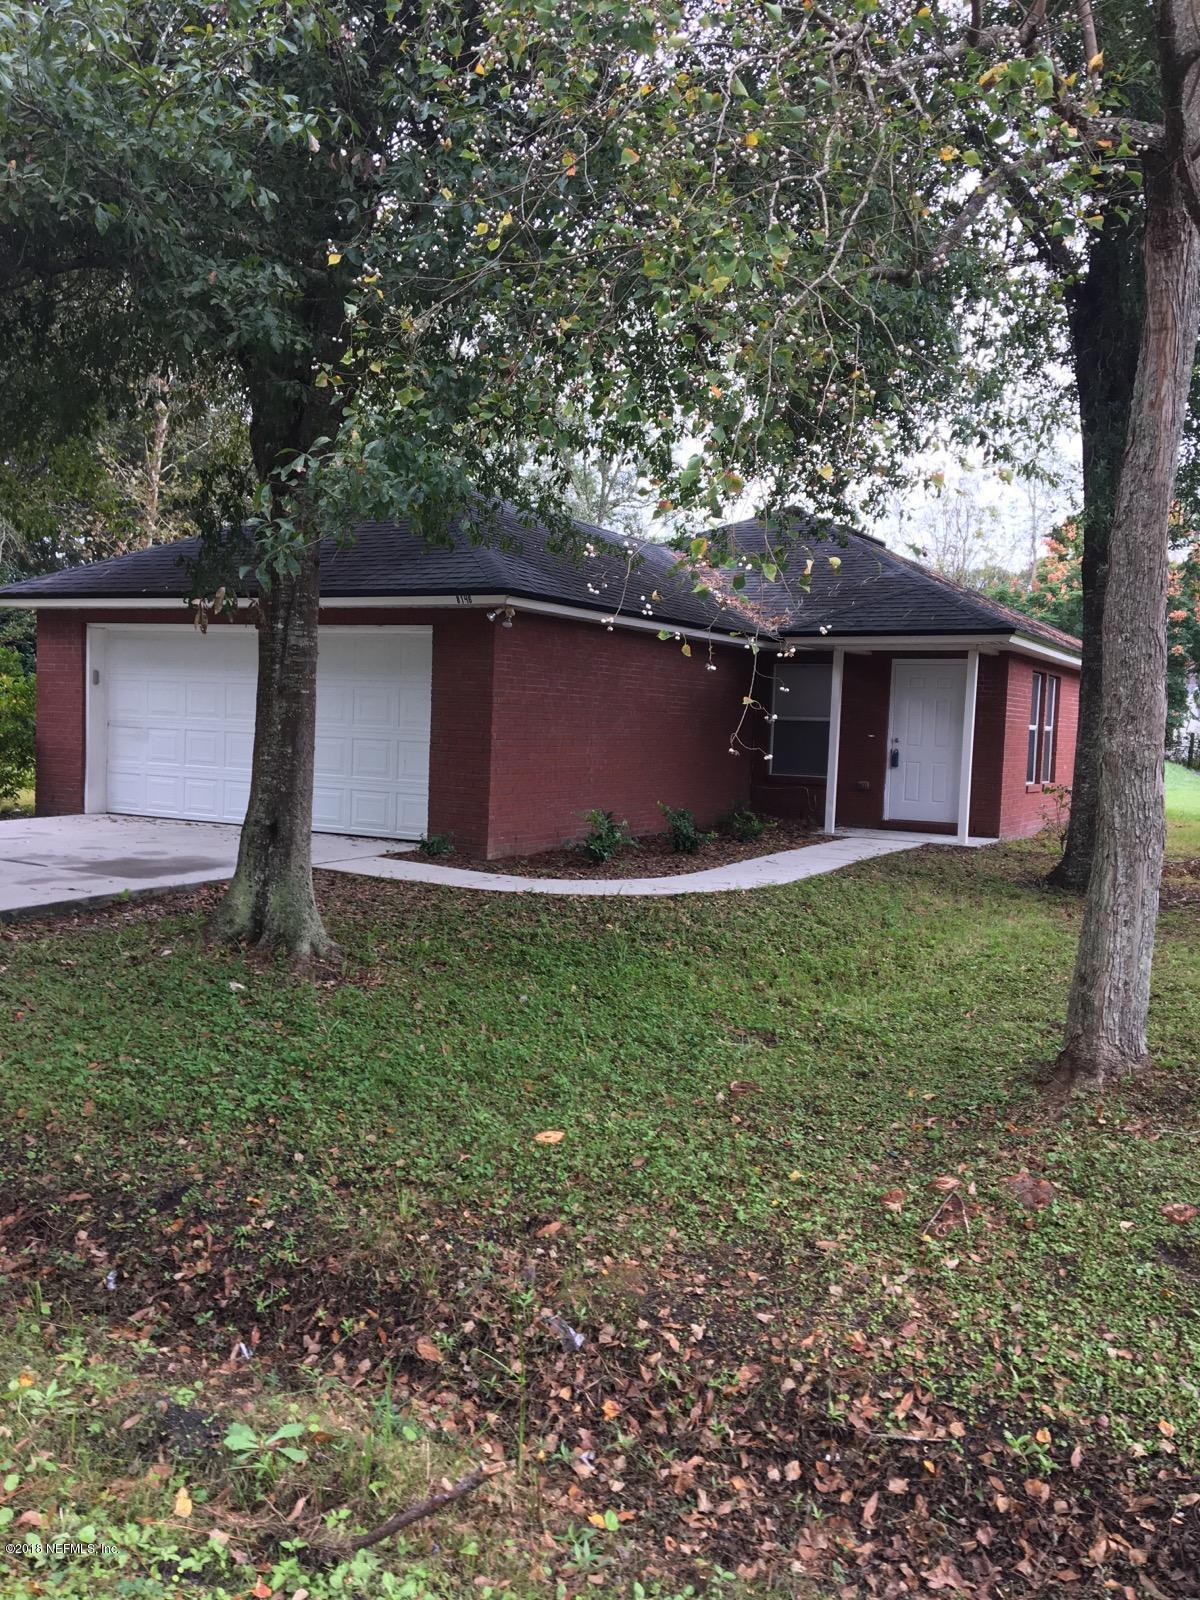 8146 NOROAD, JACKSONVILLE, FLORIDA 32210, 3 Bedrooms Bedrooms, ,2 BathroomsBathrooms,Residential - single family,For sale,NOROAD,965264